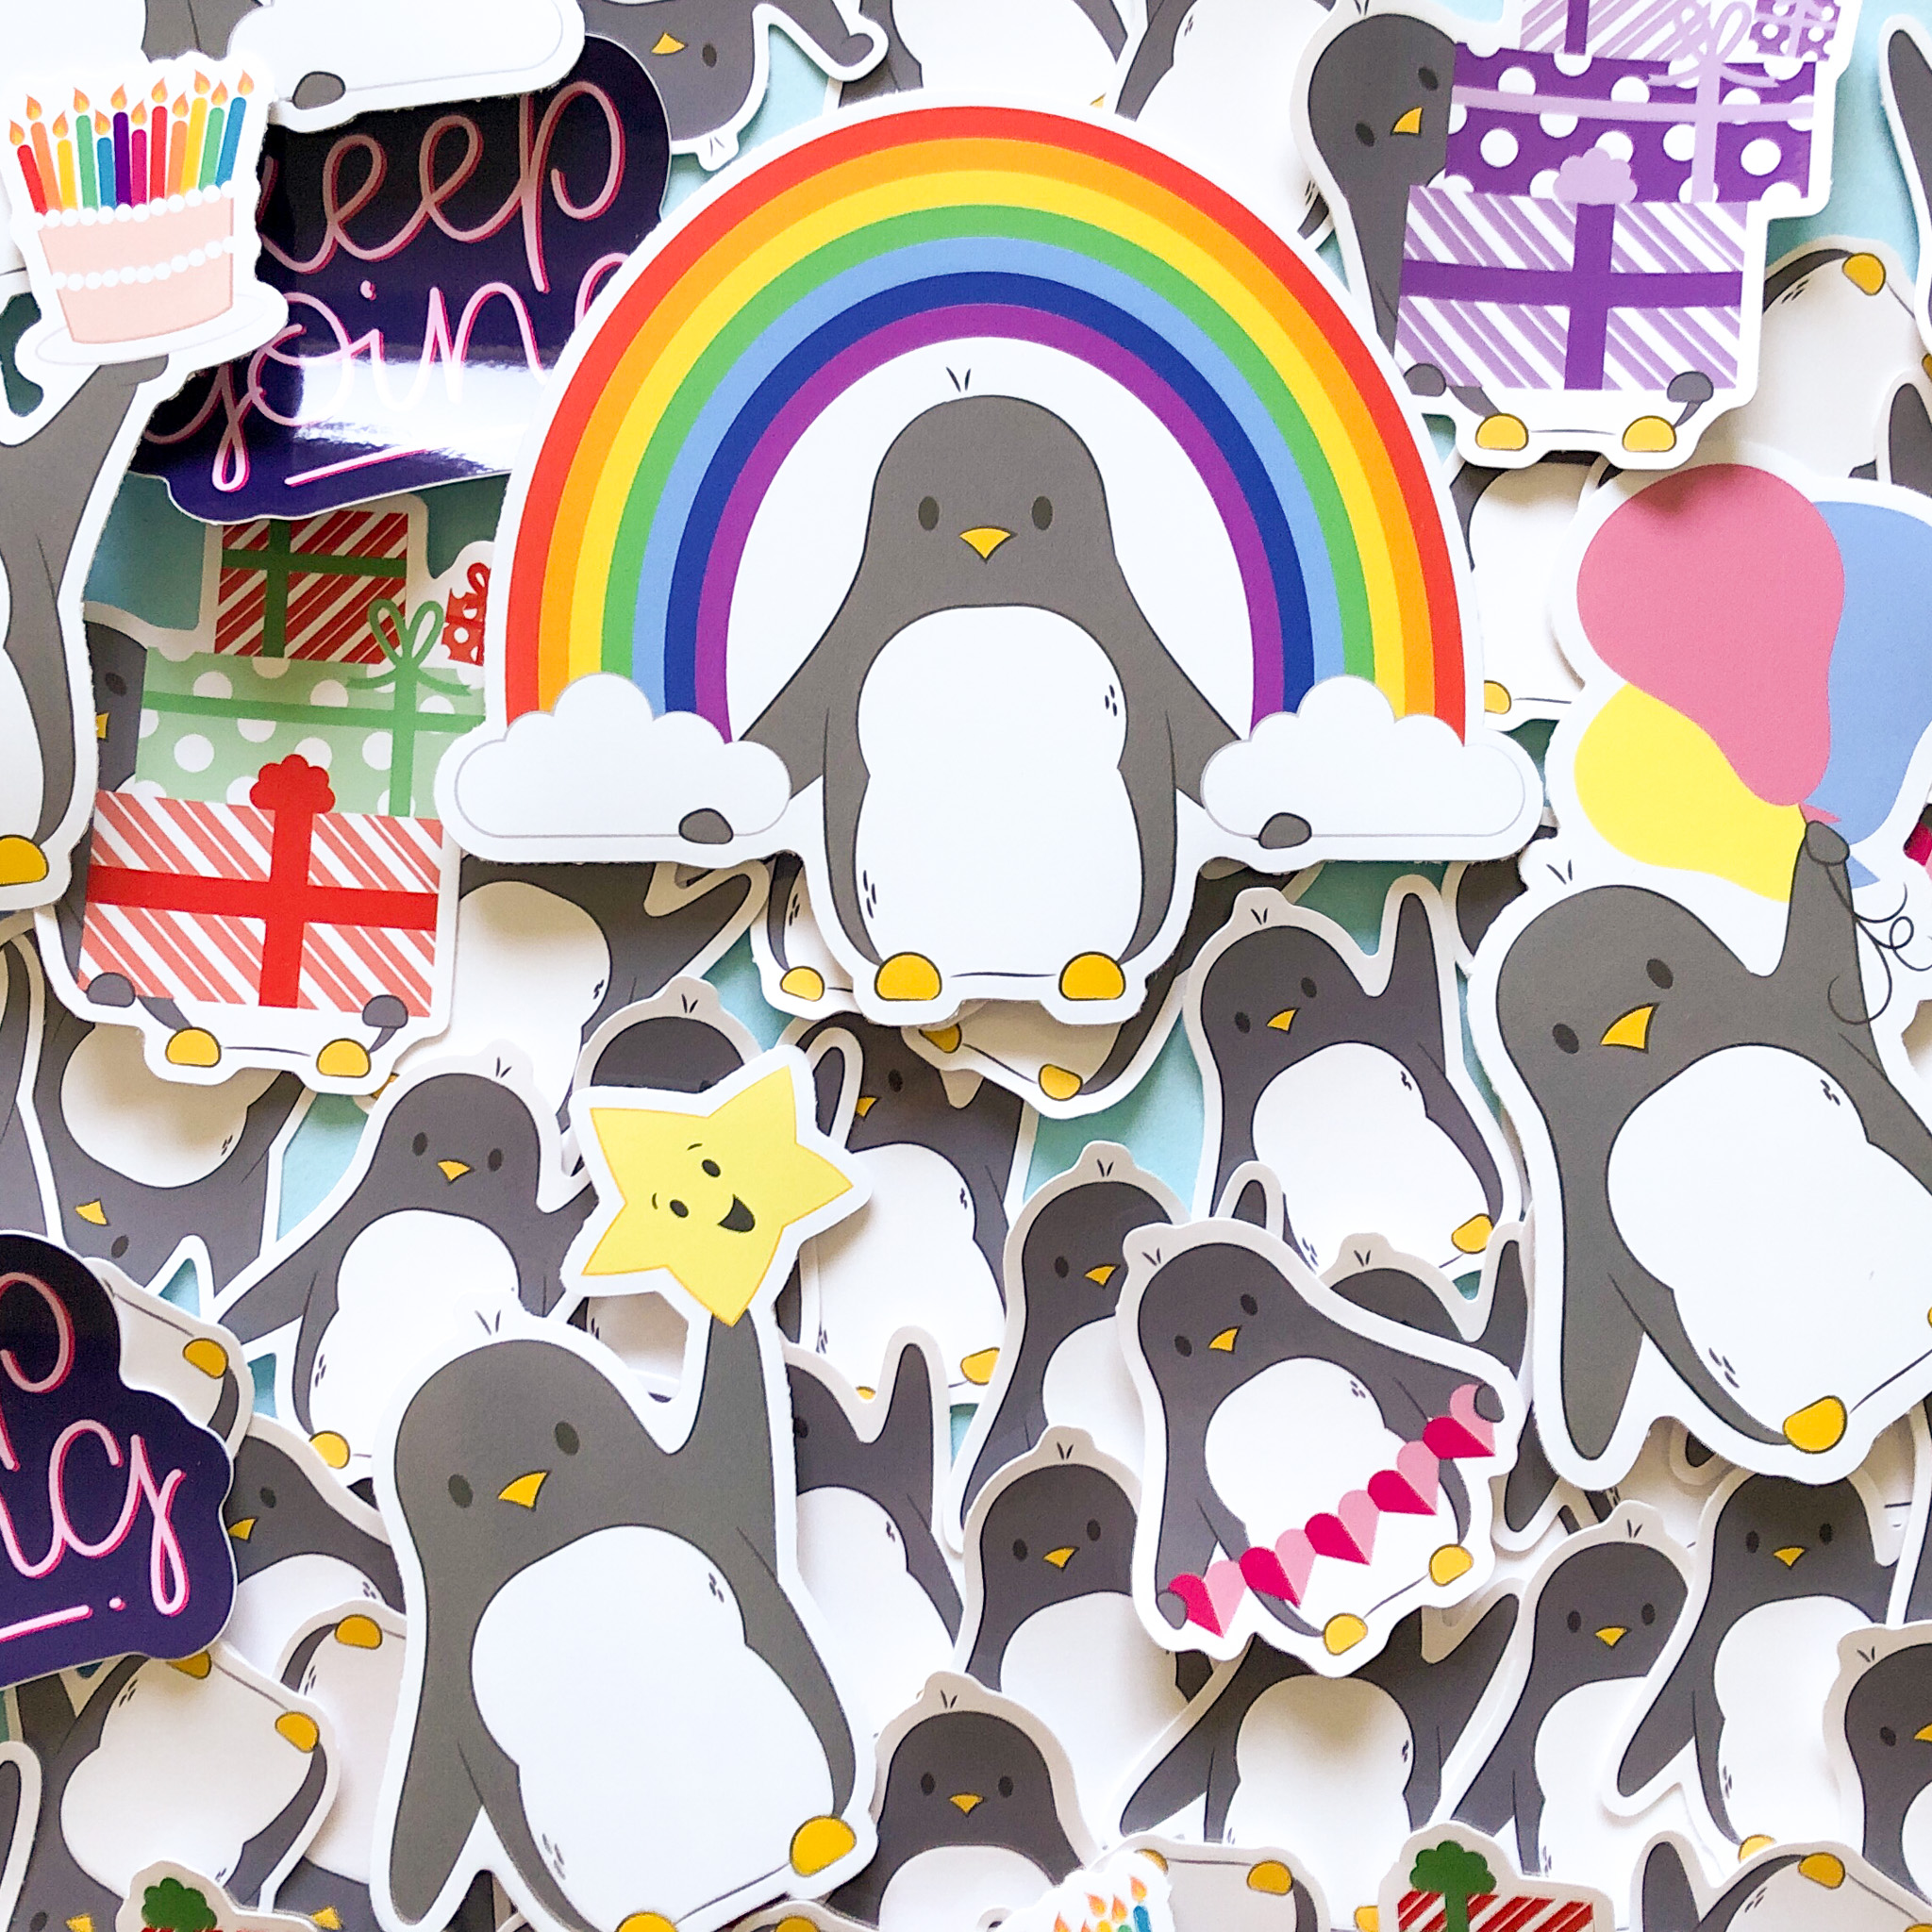 A selection of cute penguin stickers all overlapping on top of each other, they fill the frame.